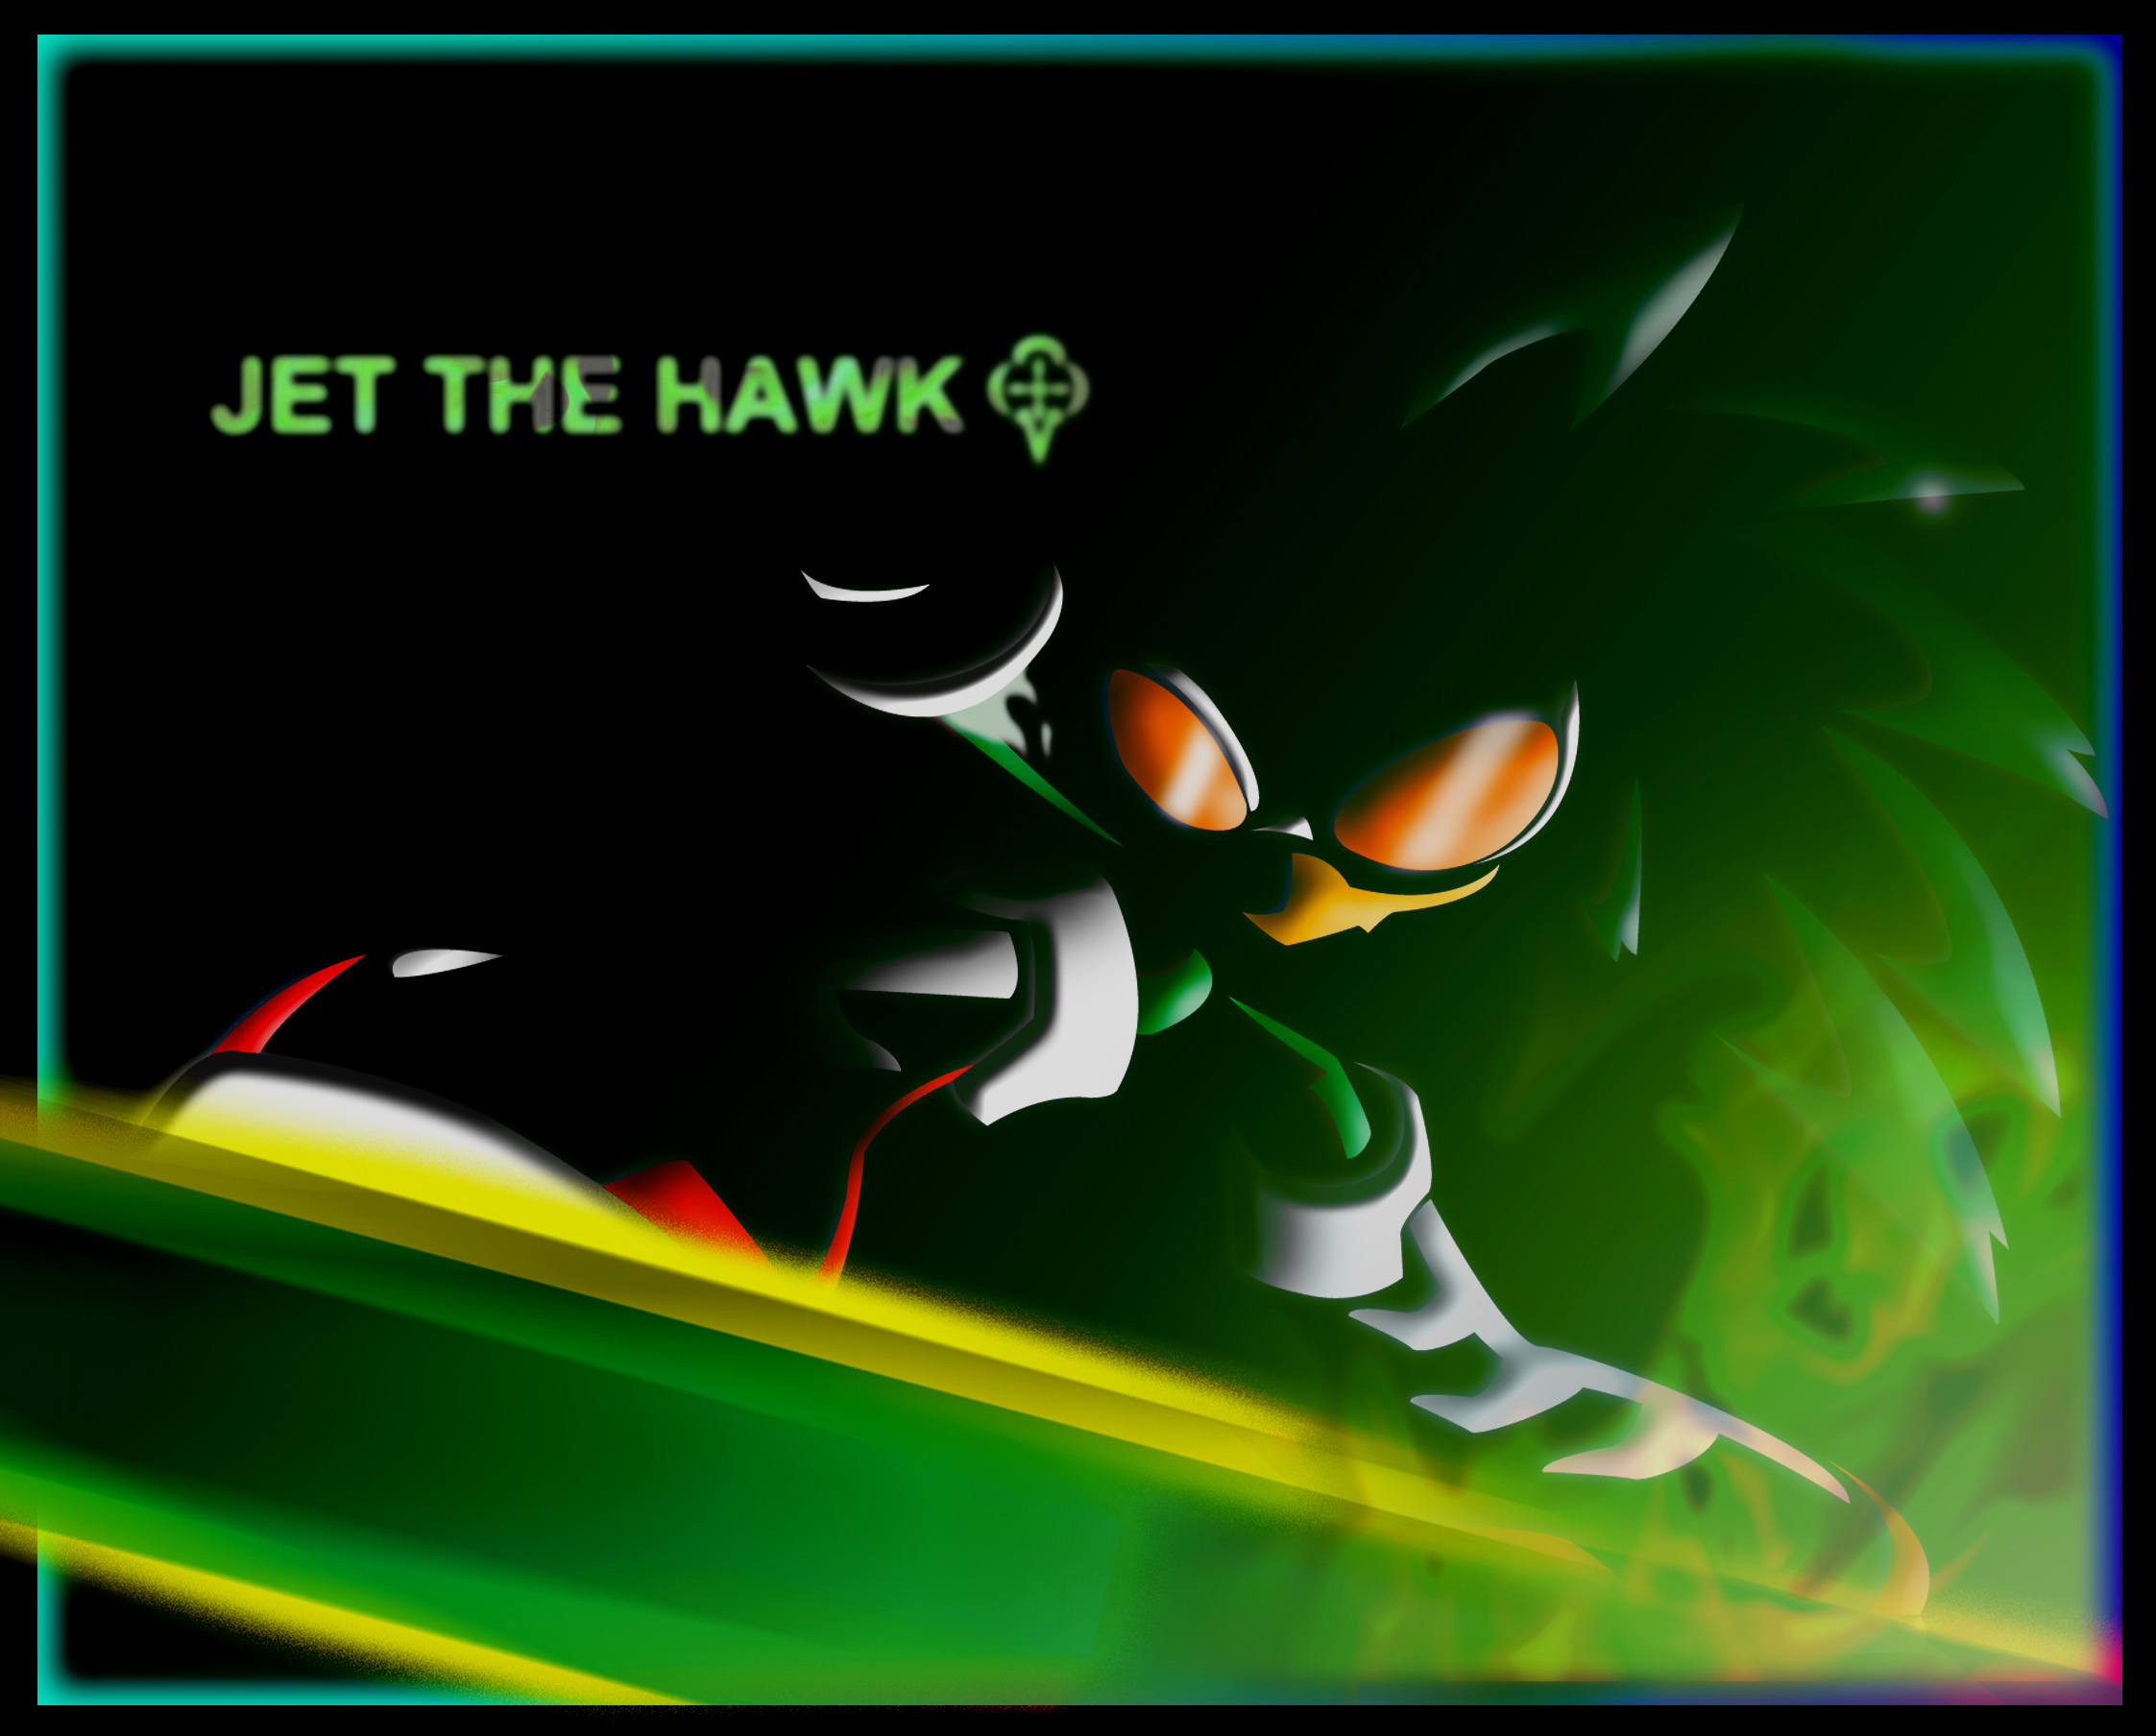 1000+ images about Jet the hawk on Pinterest